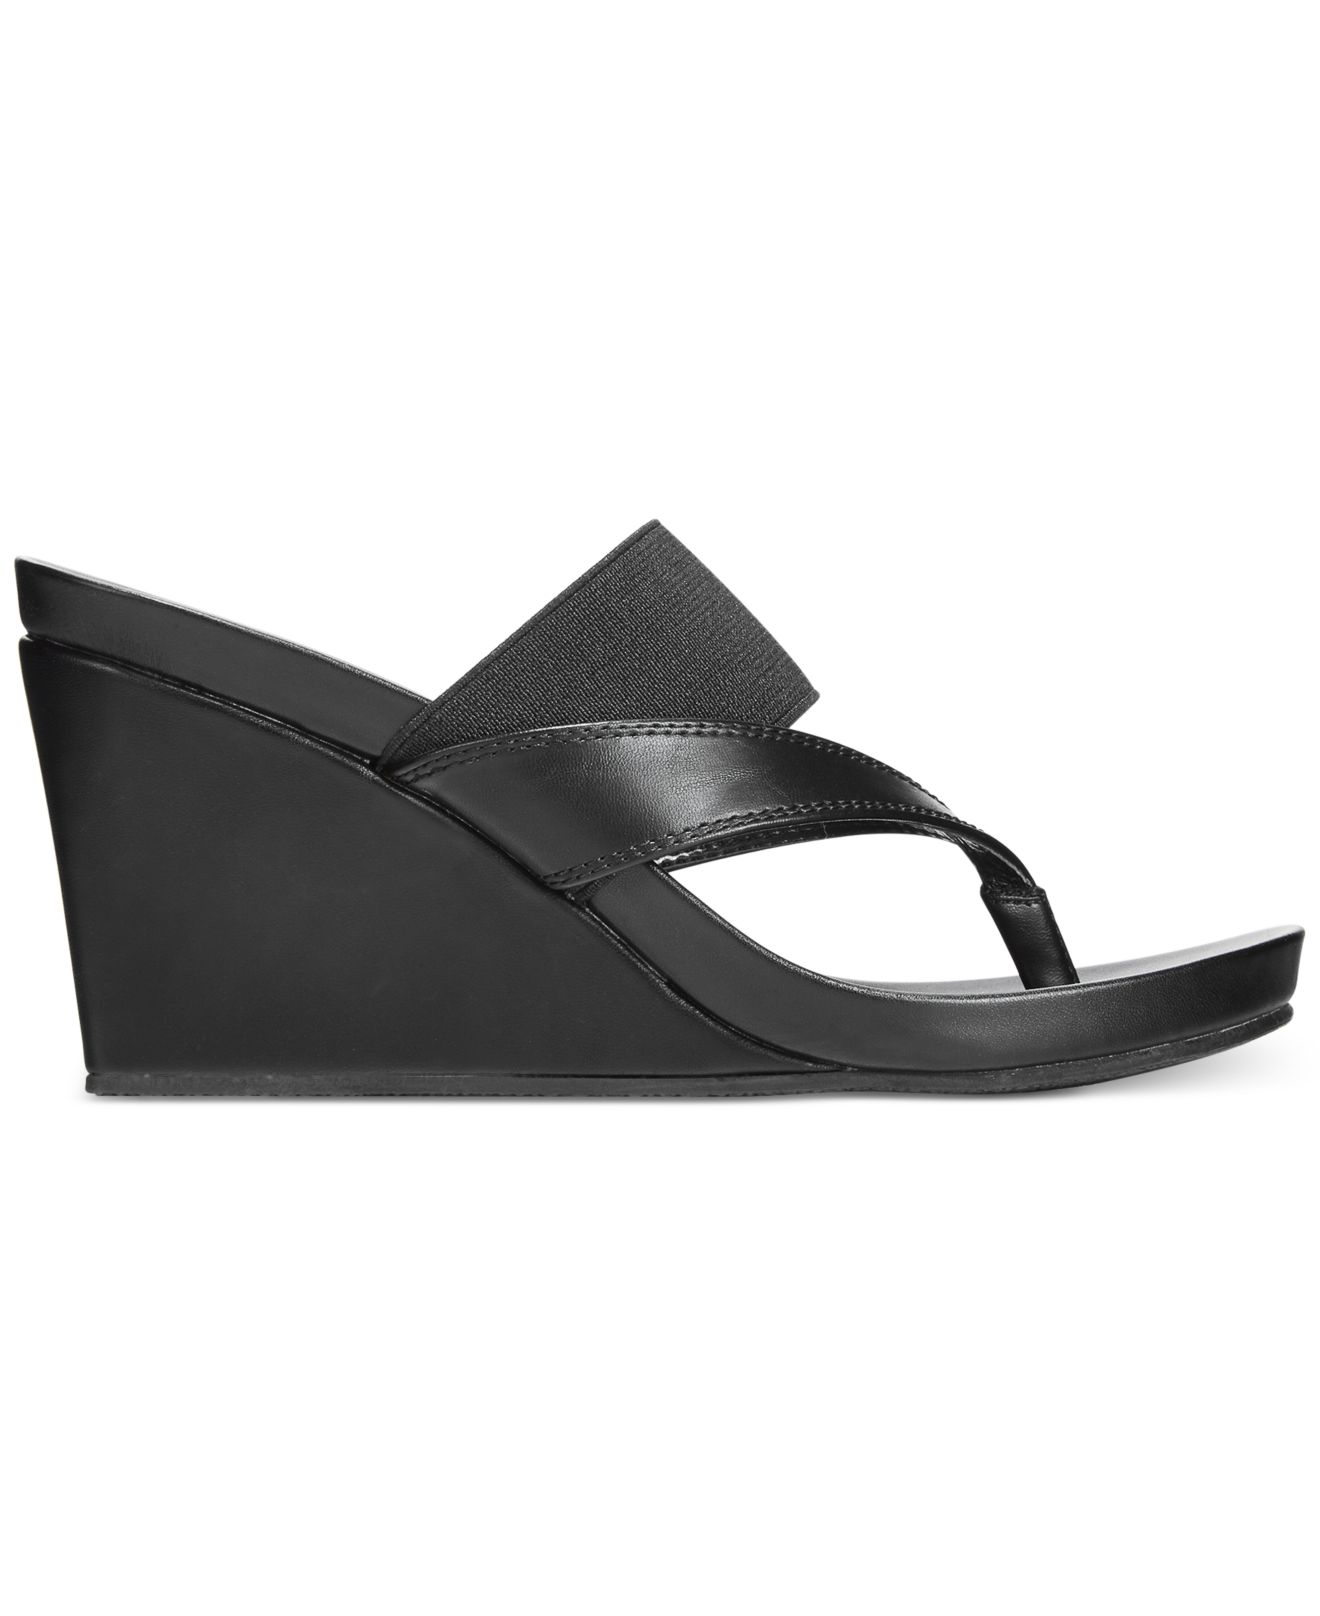 style co carlitaa wedge sandals only at macy s in